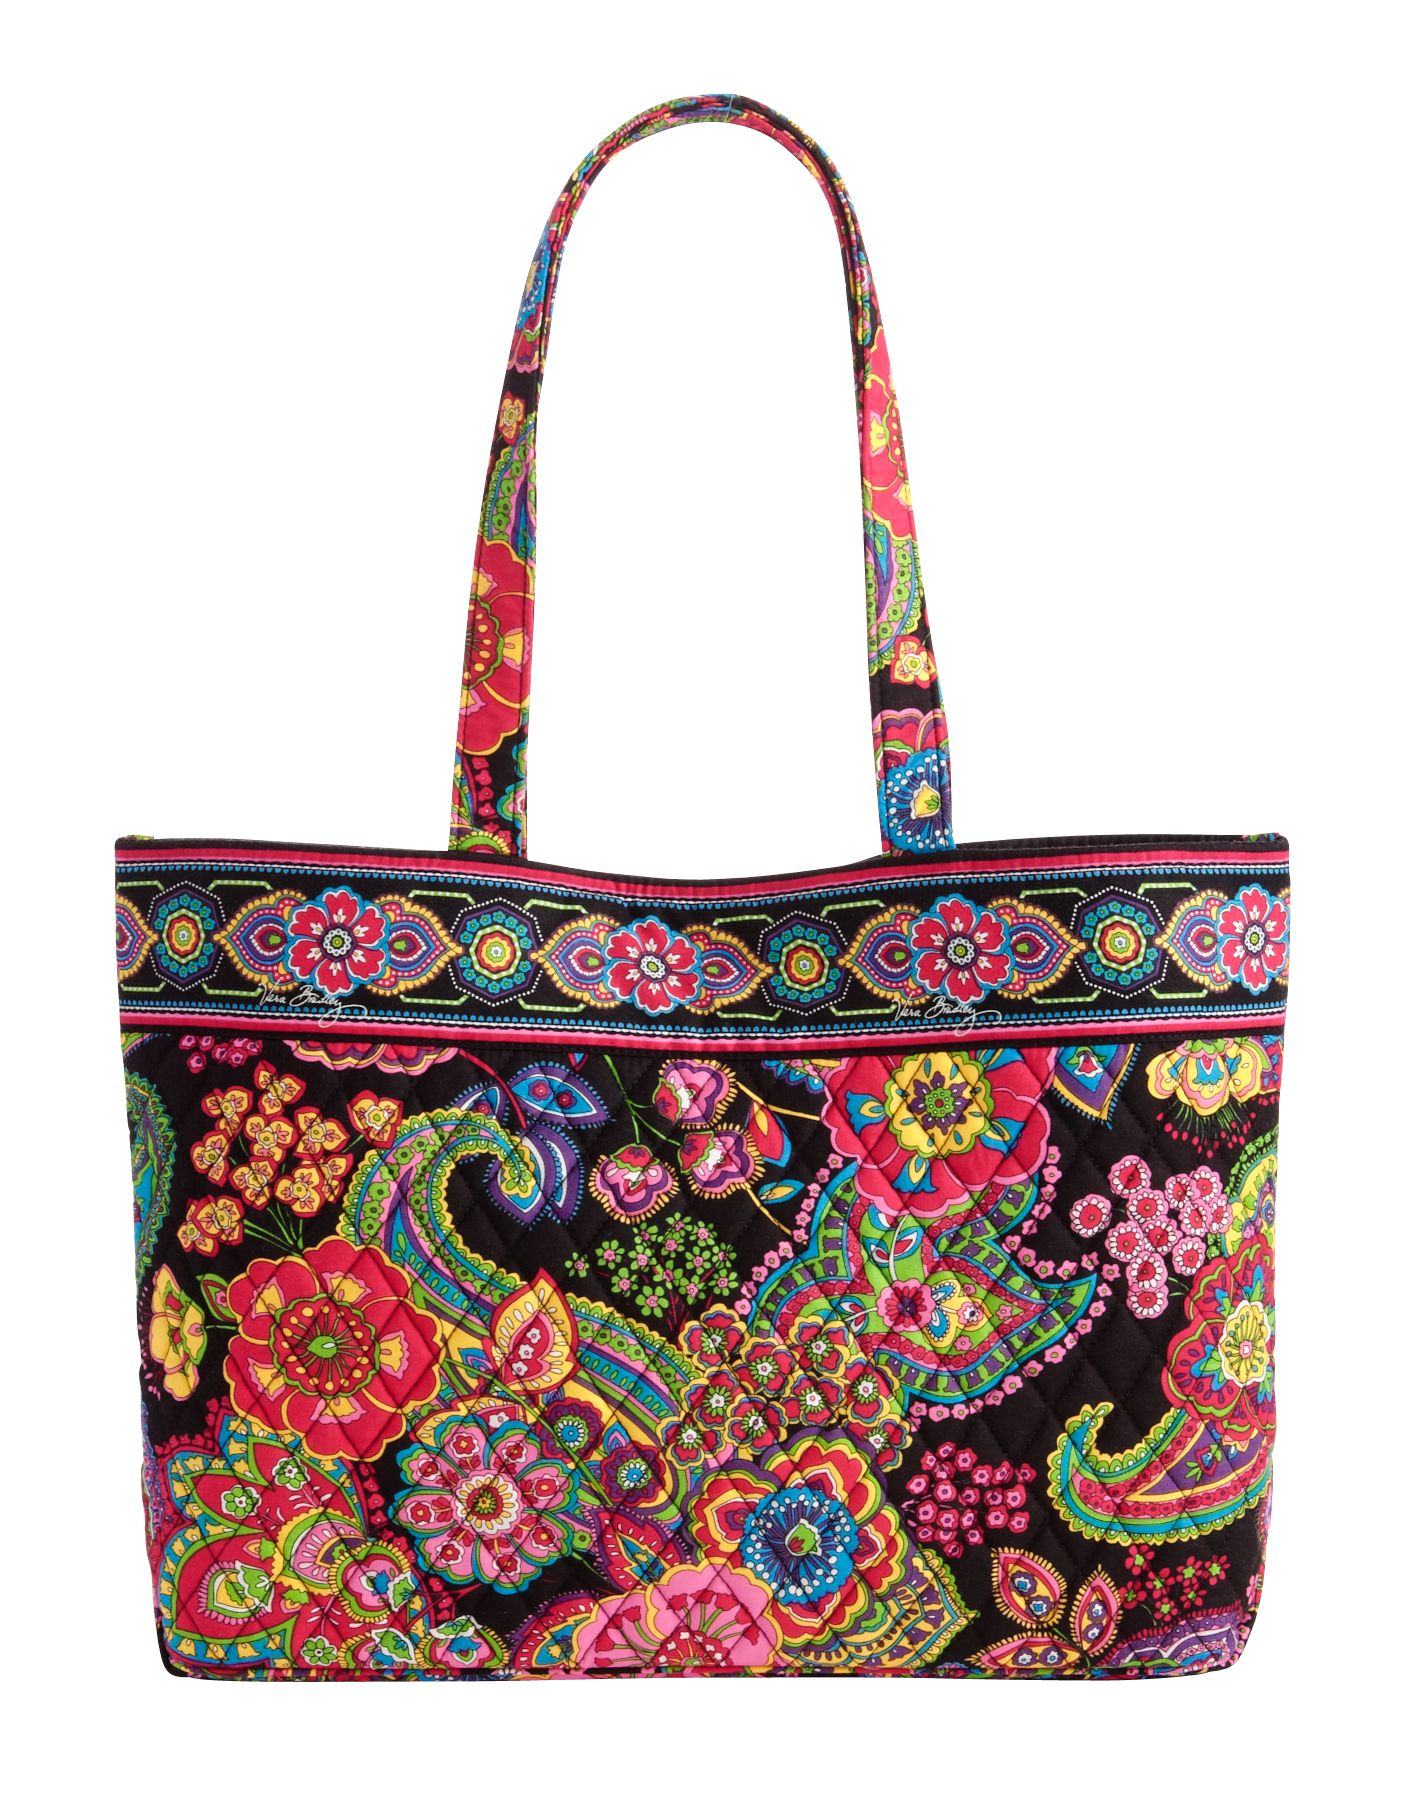 Feminine totes, duffels, purses, wallets, and more are available for less with Vera Bradley coupons. The company – launched by two friends in – supplies quilted cotton bags in eye-catching prints to more than 3, authorized retailers in the United States and Canada, as well as at jayslowlemangbud.ga